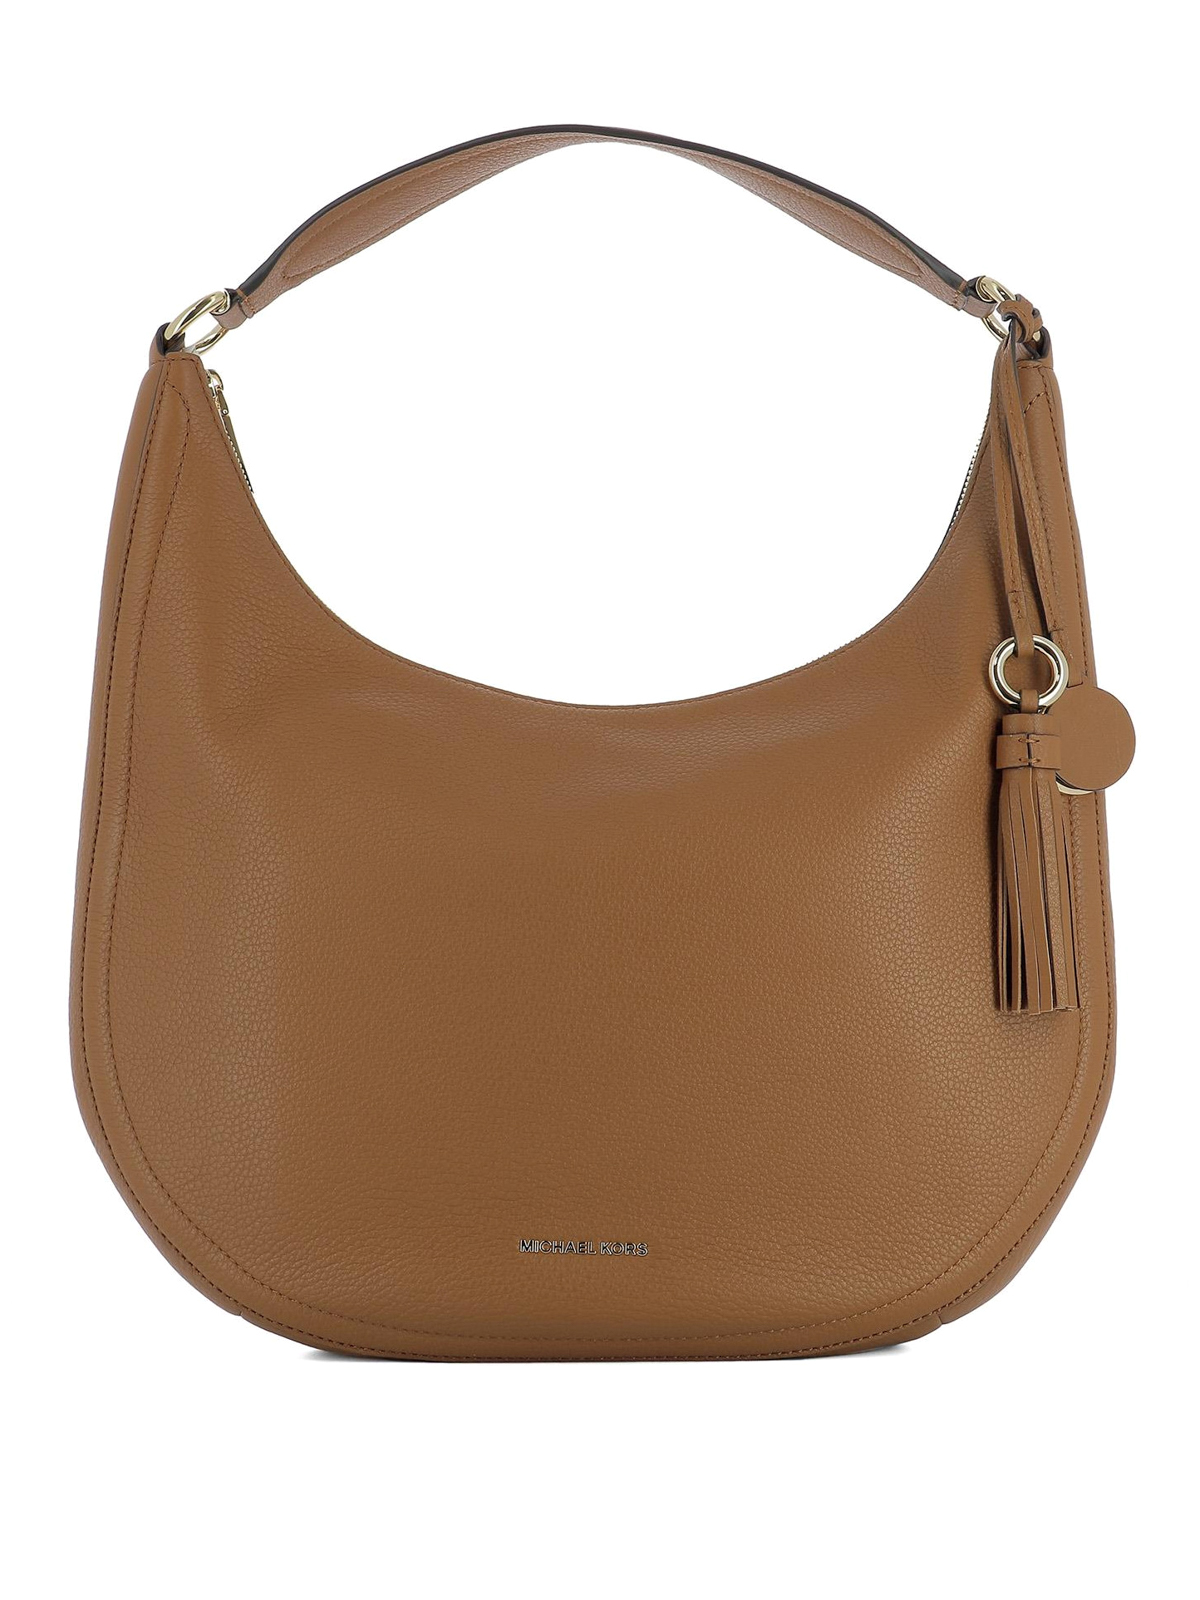 d95818a38faa Michael Kors Lydia Leather Shoulder Bag | Stanford Center for ...